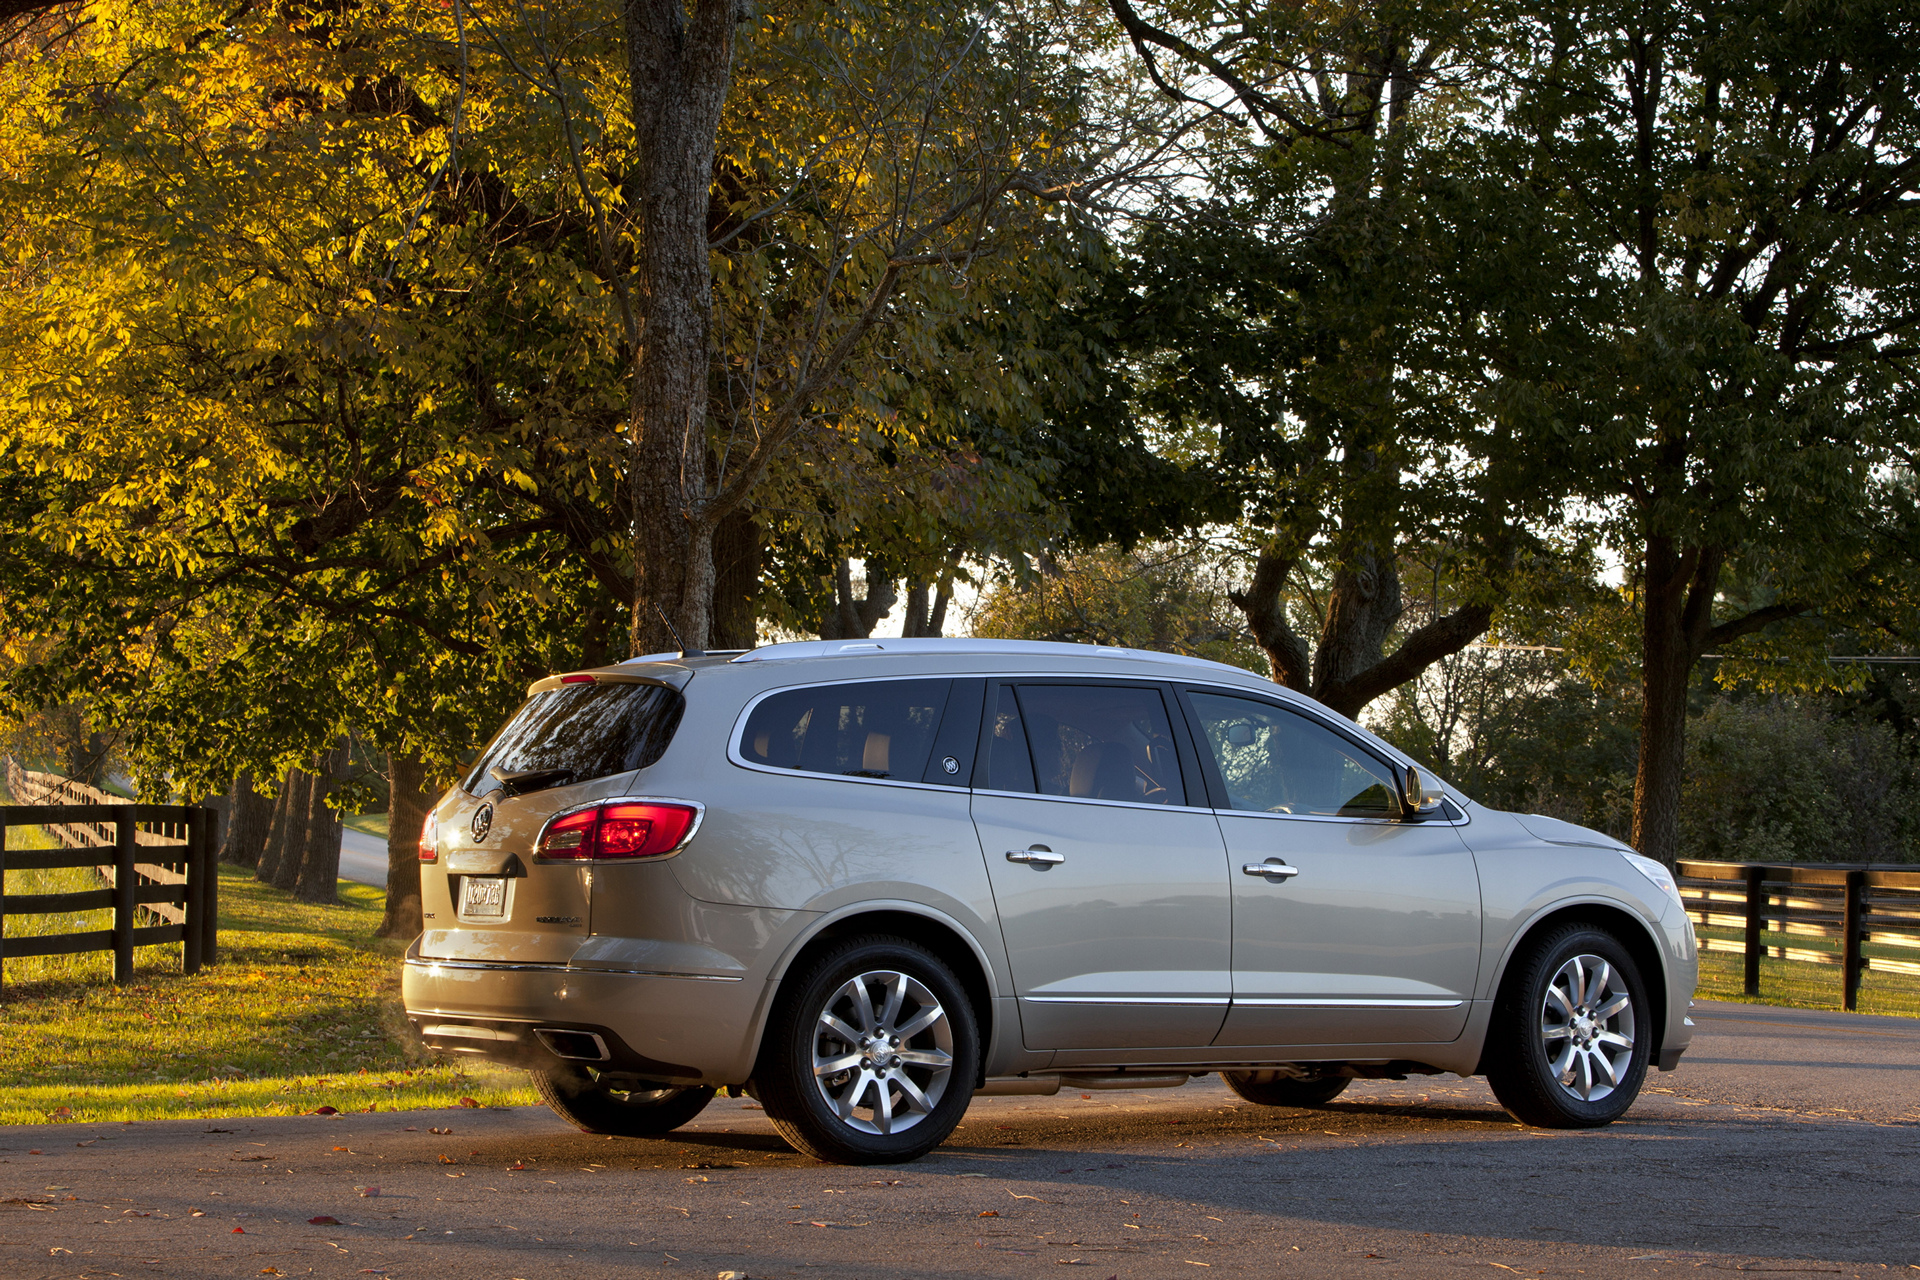 Twin City Buick 2016 Buick Enclave Review